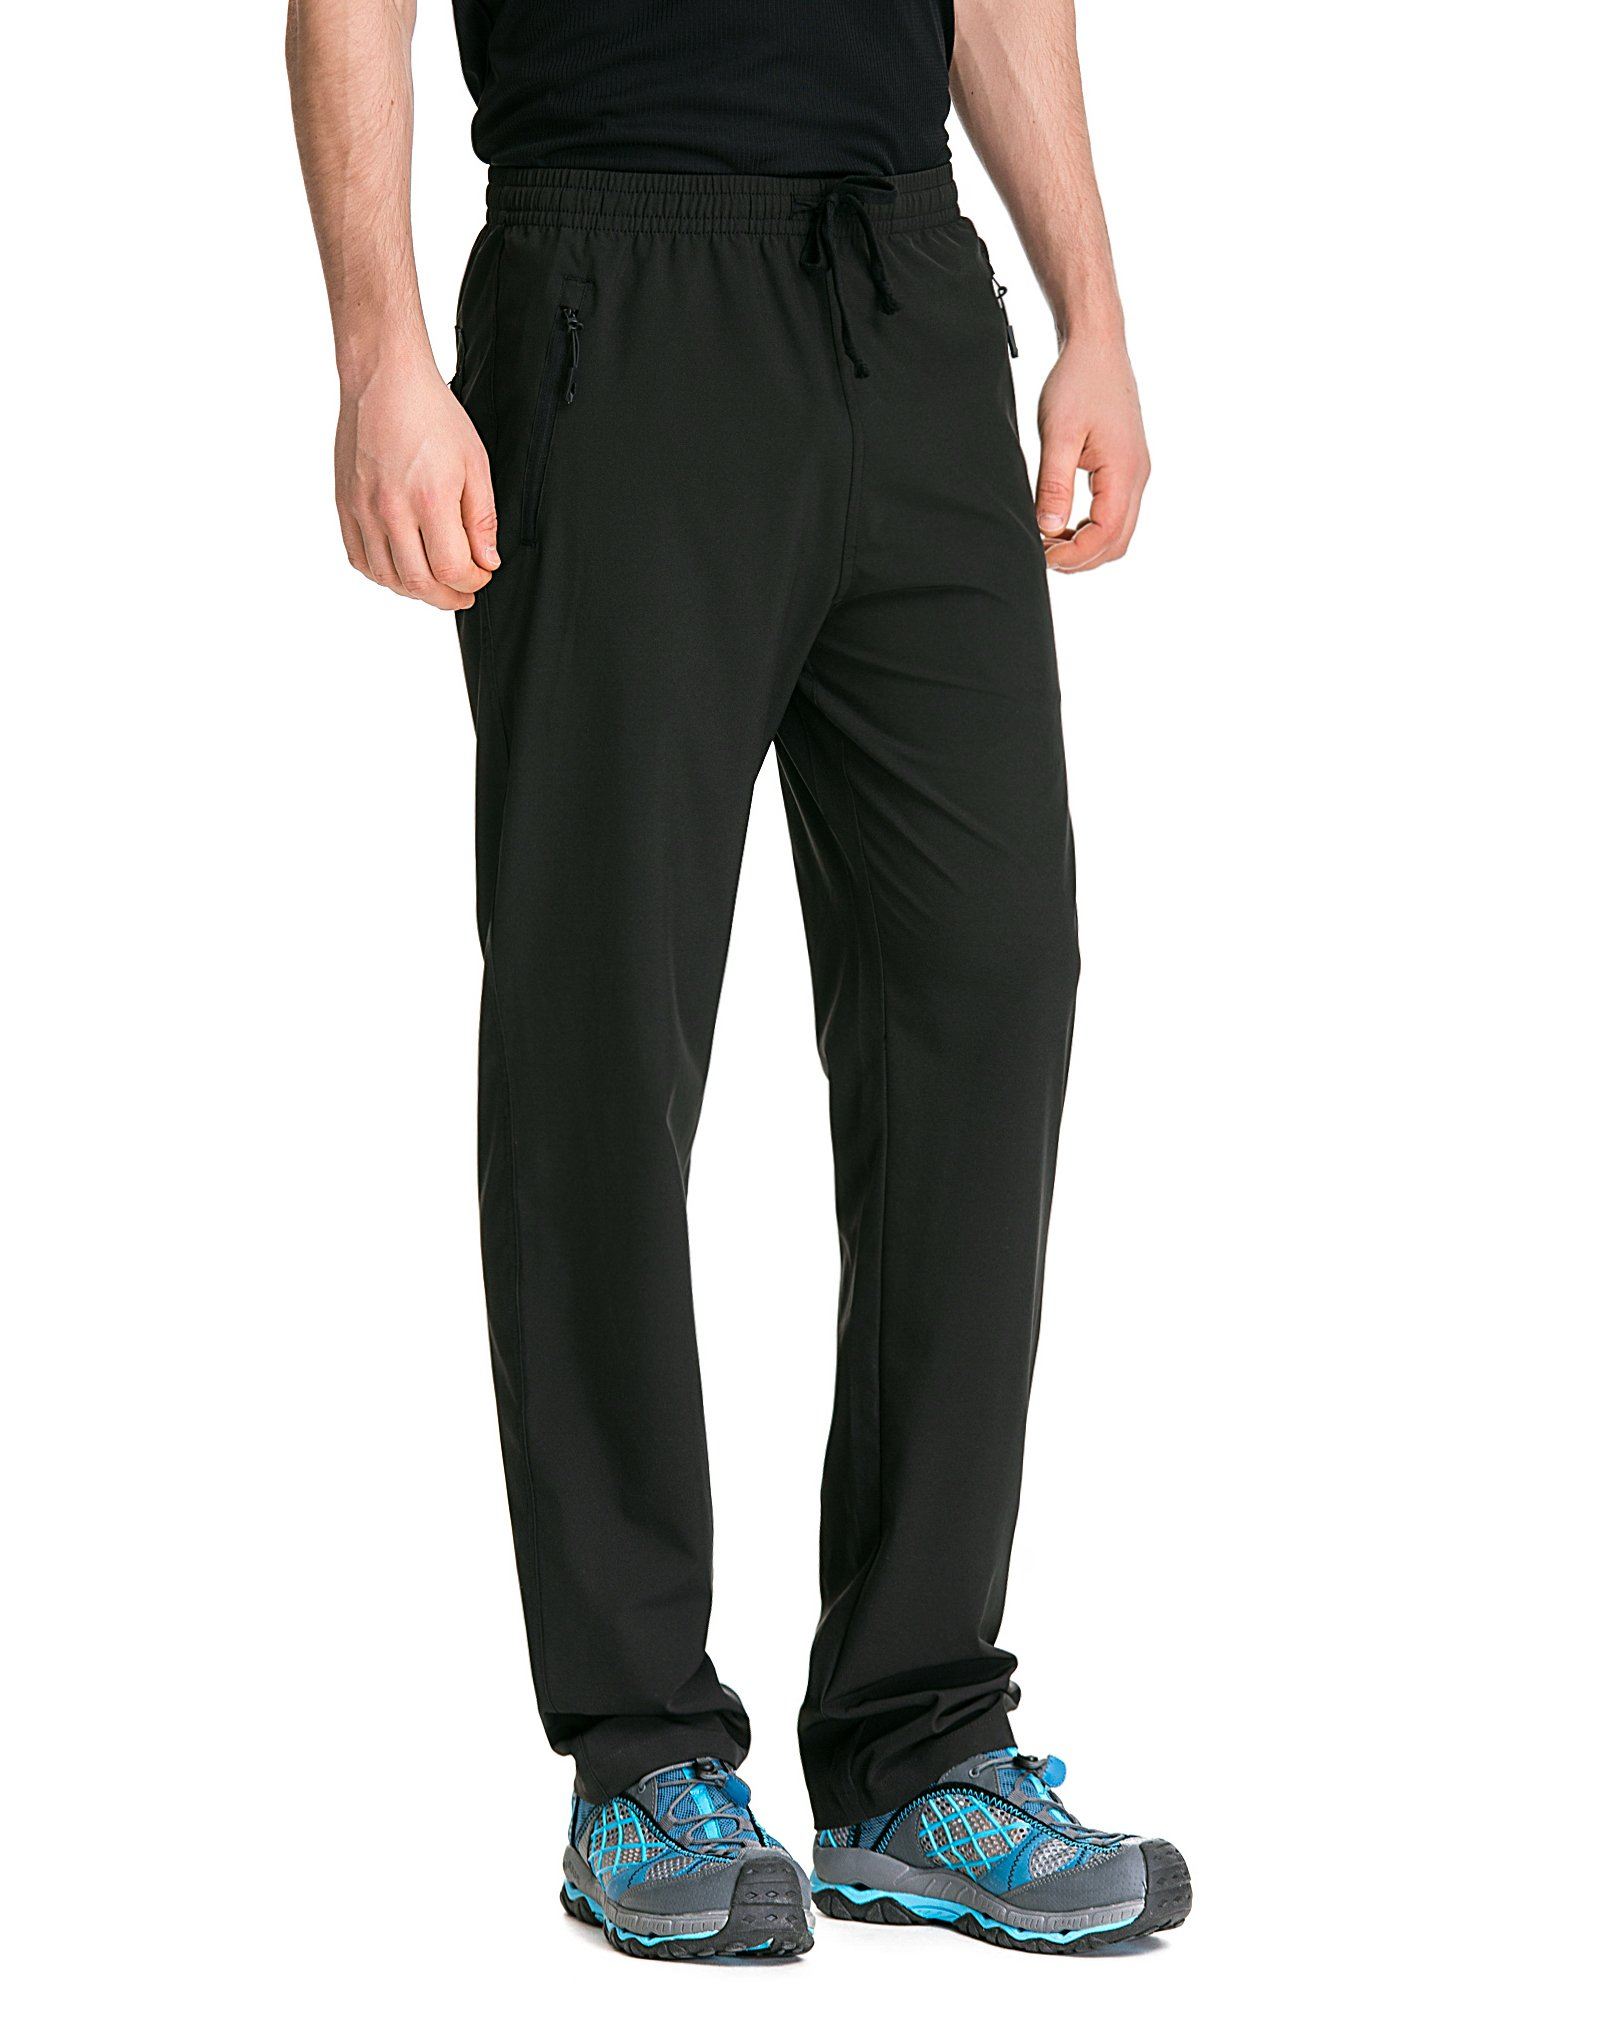 Trailside Supply Co. Men's Light Weight Stretch Elastic-Waist Drawstring Track Running Gym Pants Large Black by Trailside Supply Co. (Image #1)